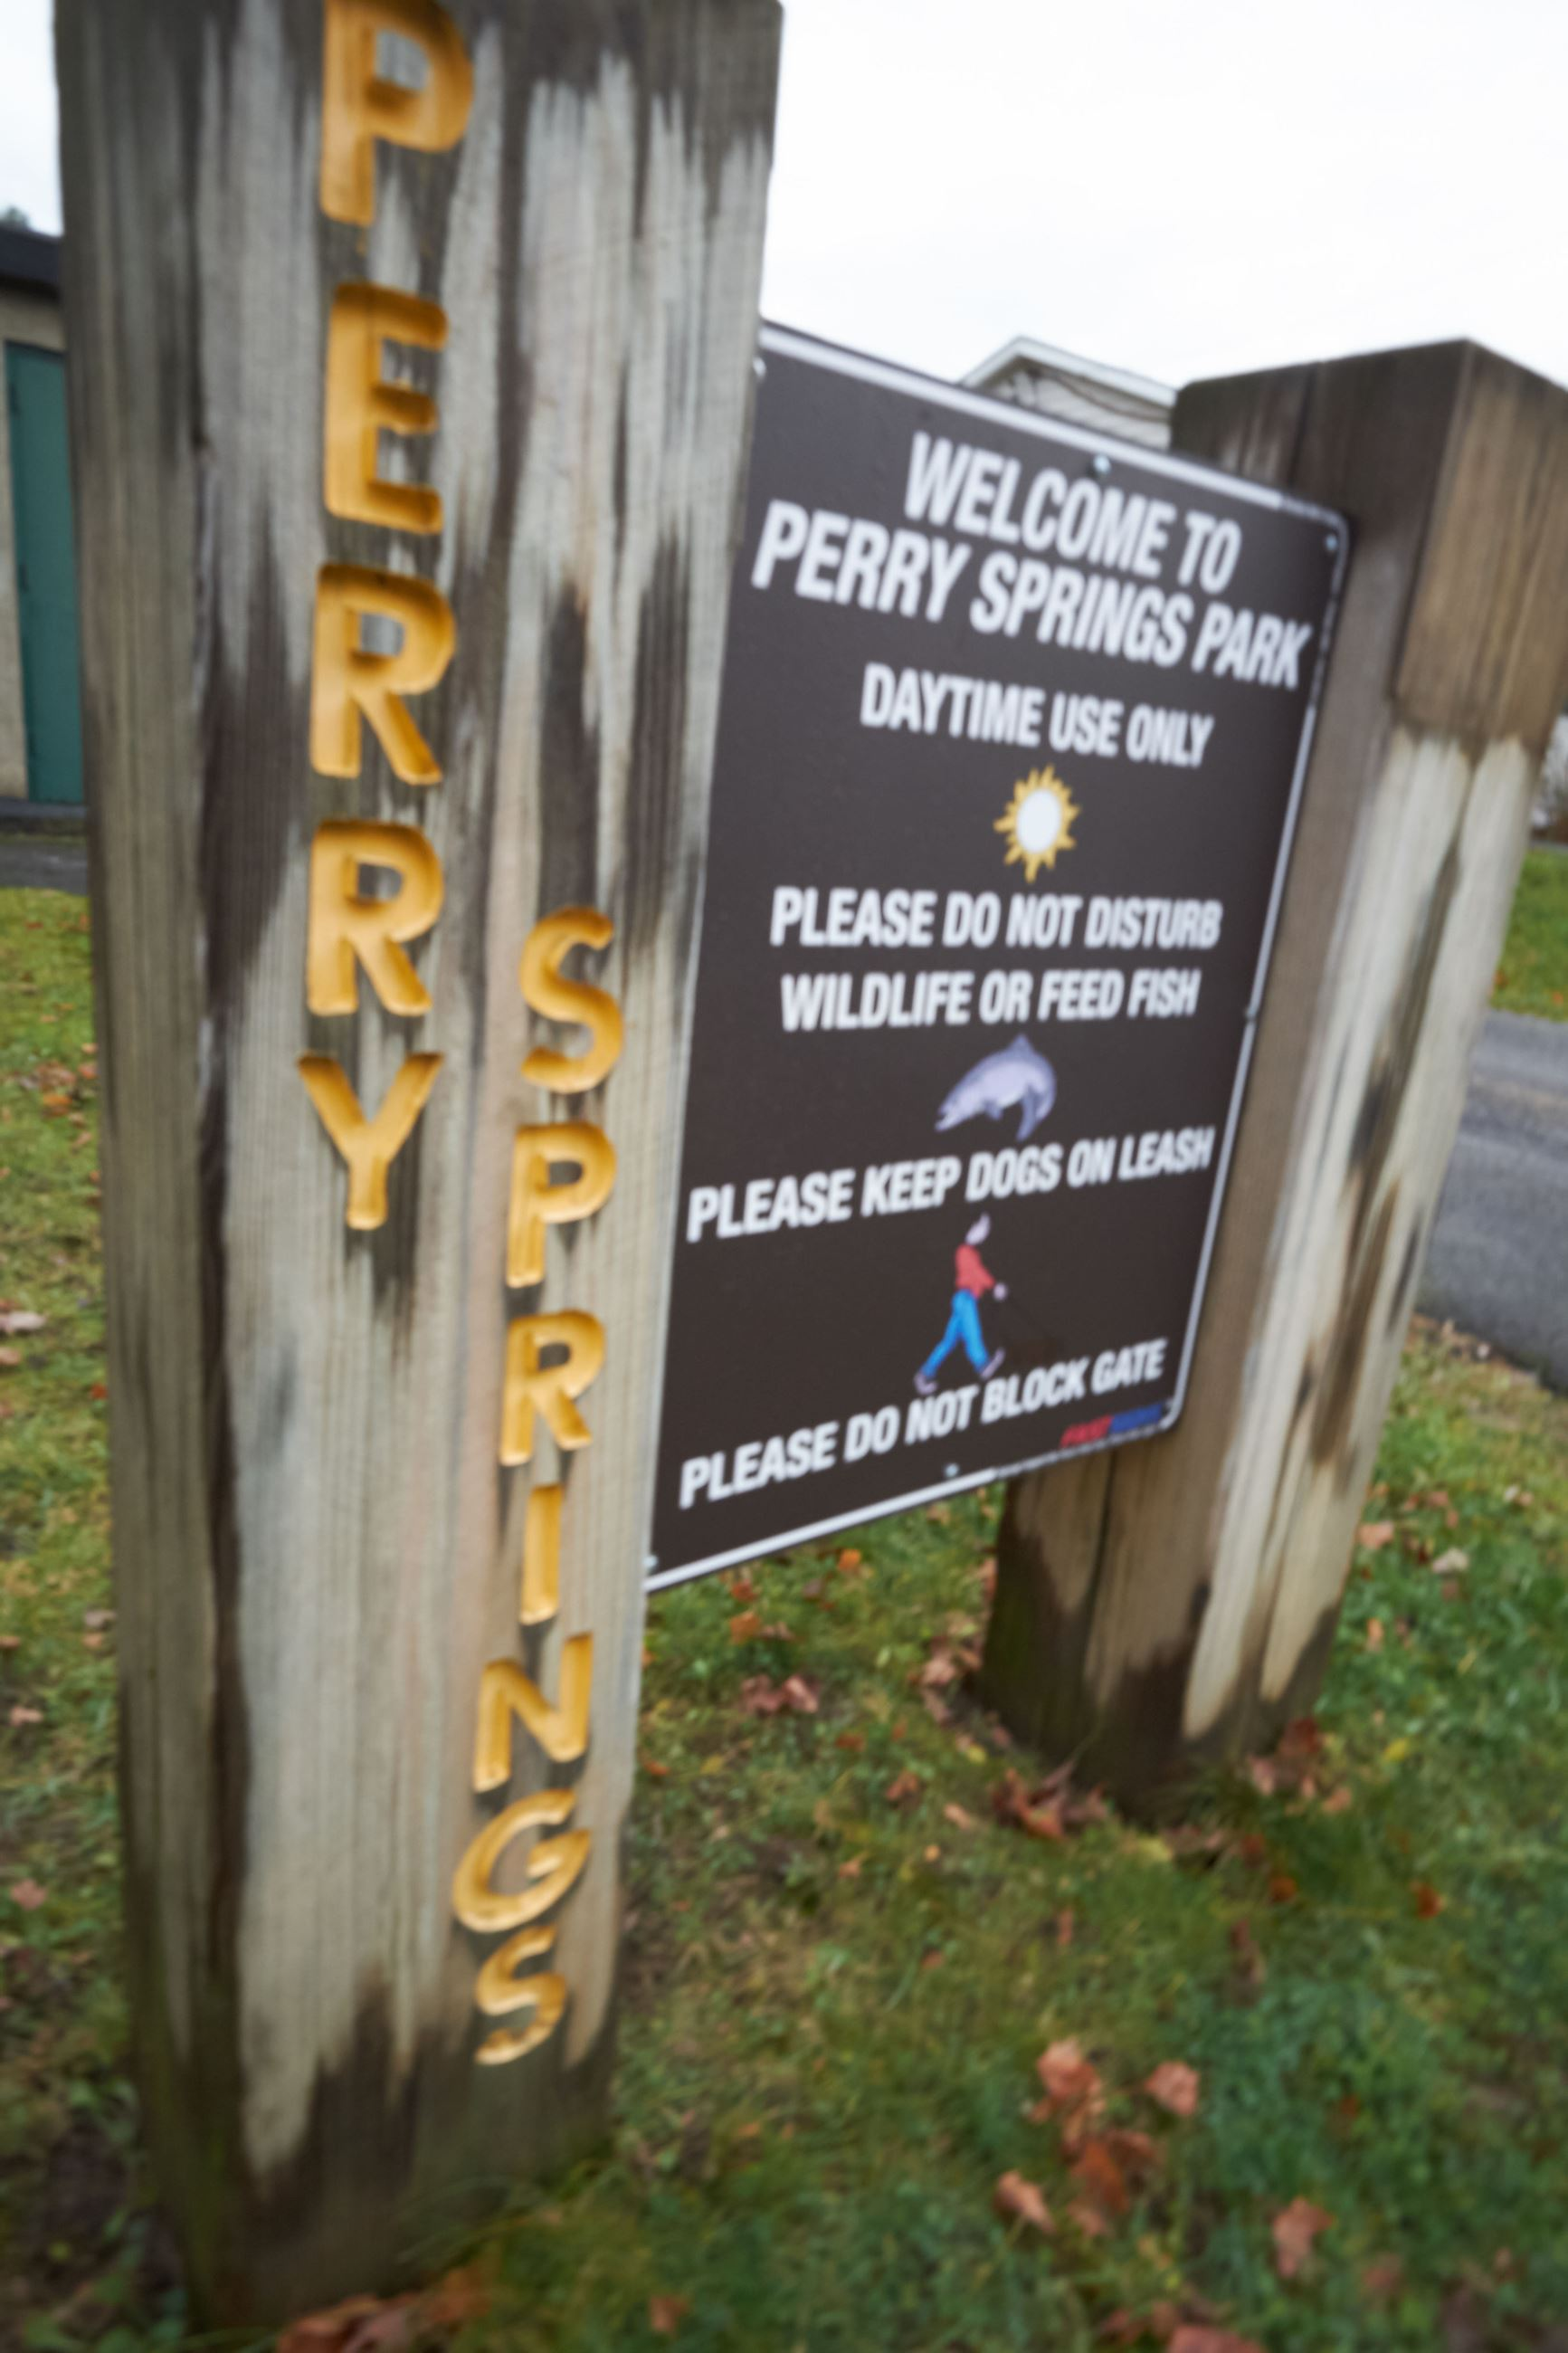 Perry Springs fish hatchery